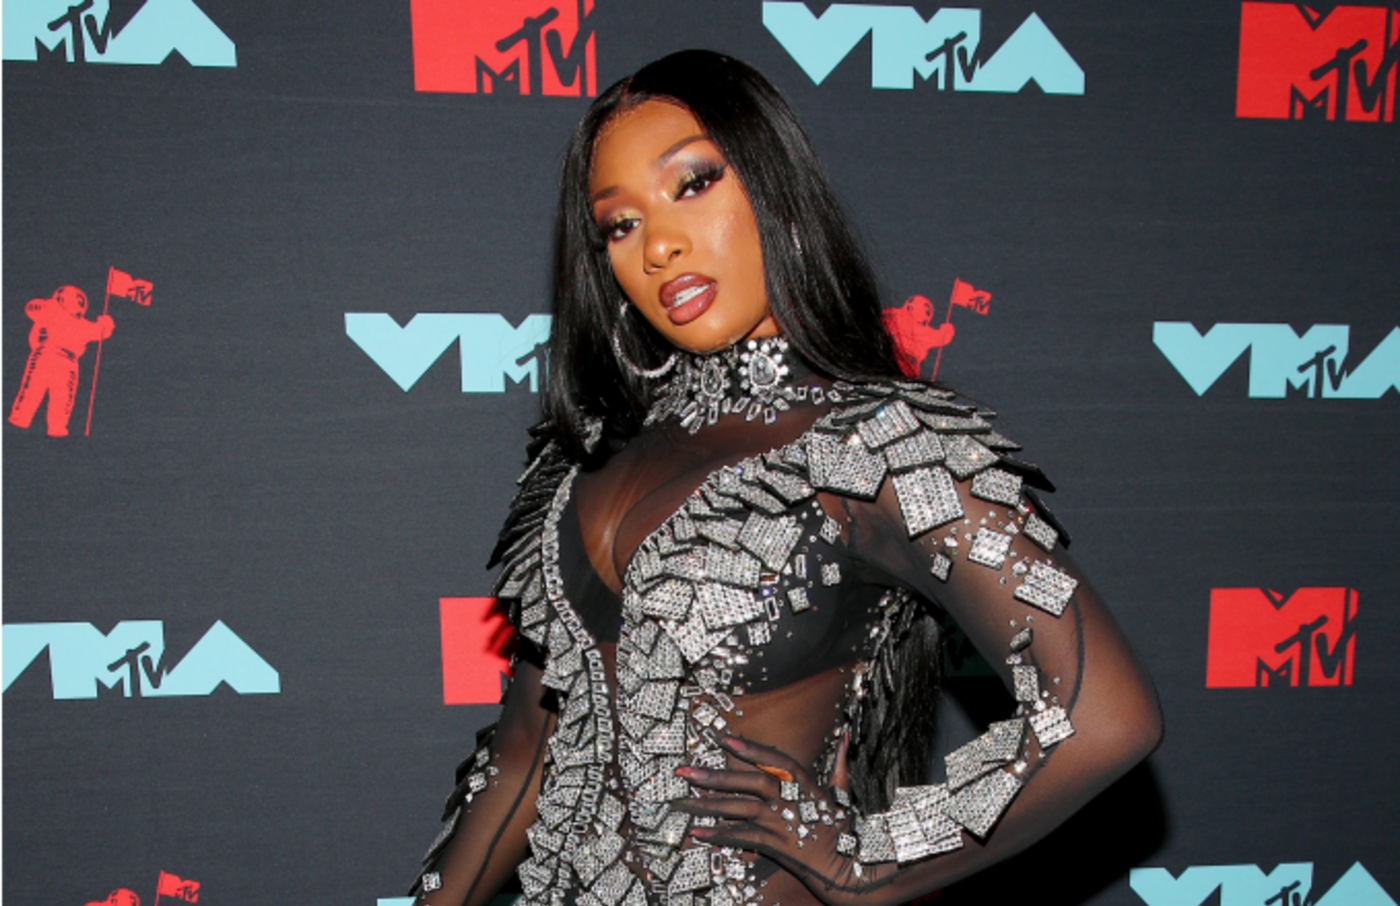 Megan Thee Stallion poses backstage during the 2019 MTV Video Music Awards